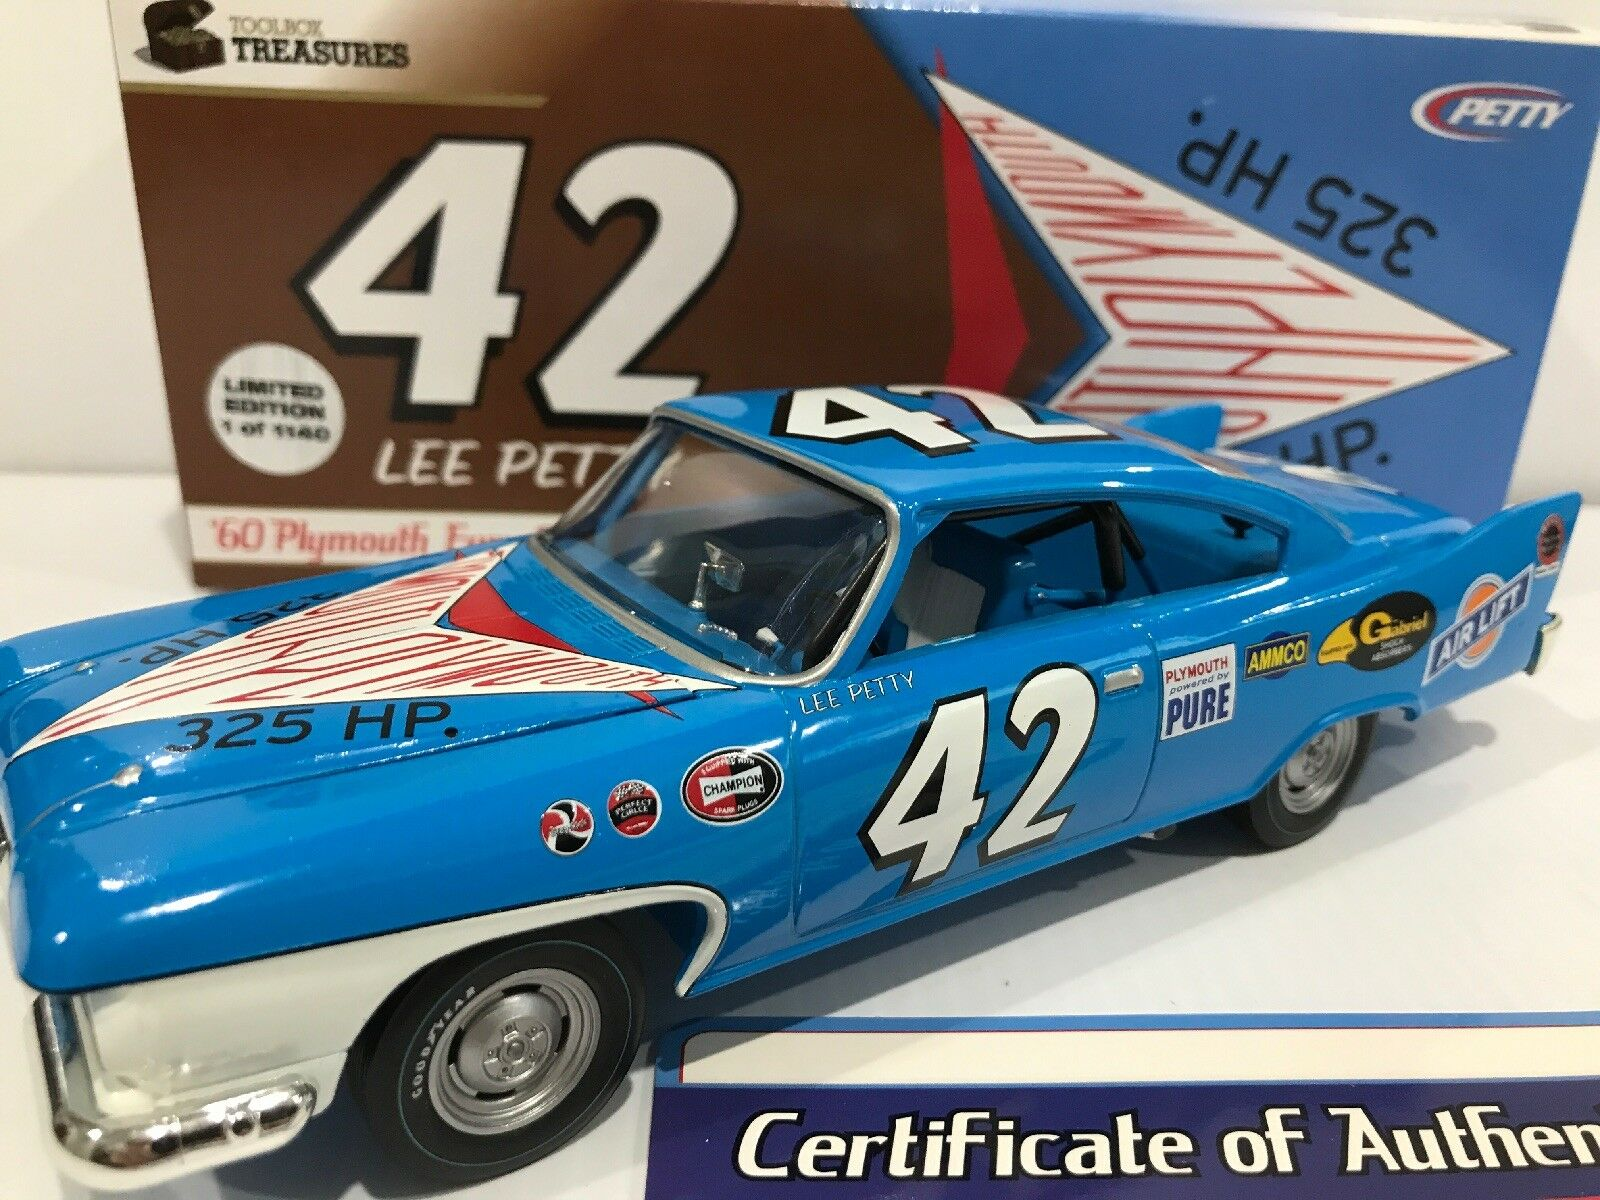 Lee Petty 1960 Plymouth Fury 1/24  Toolbox Treasures